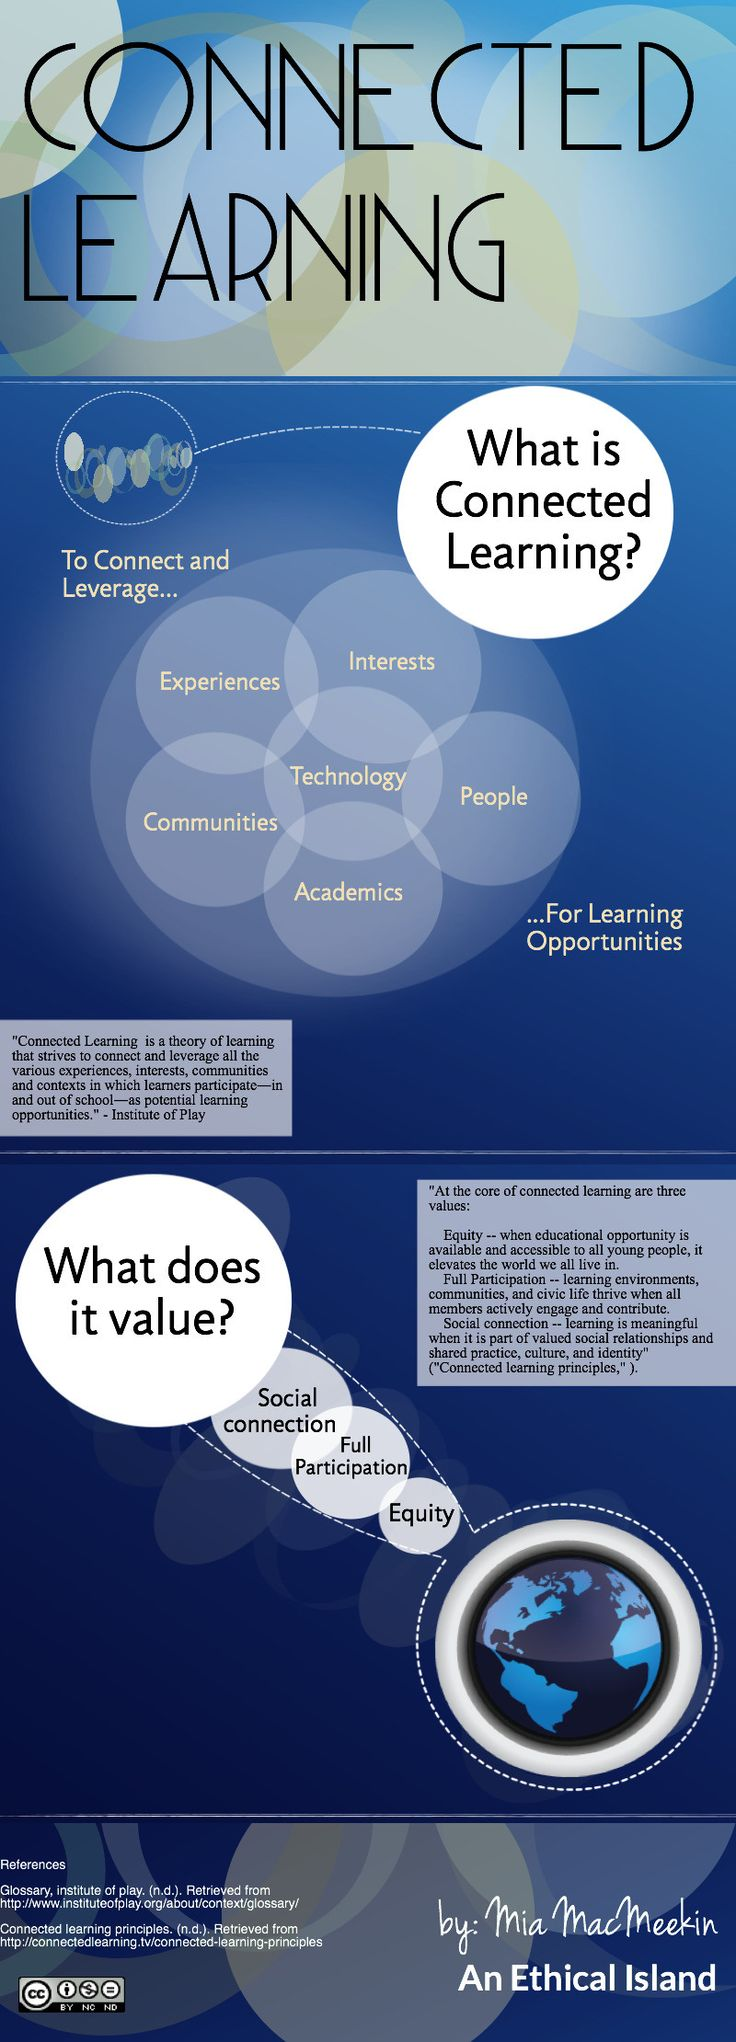 What is #connectedlearning & what does it value? #learning